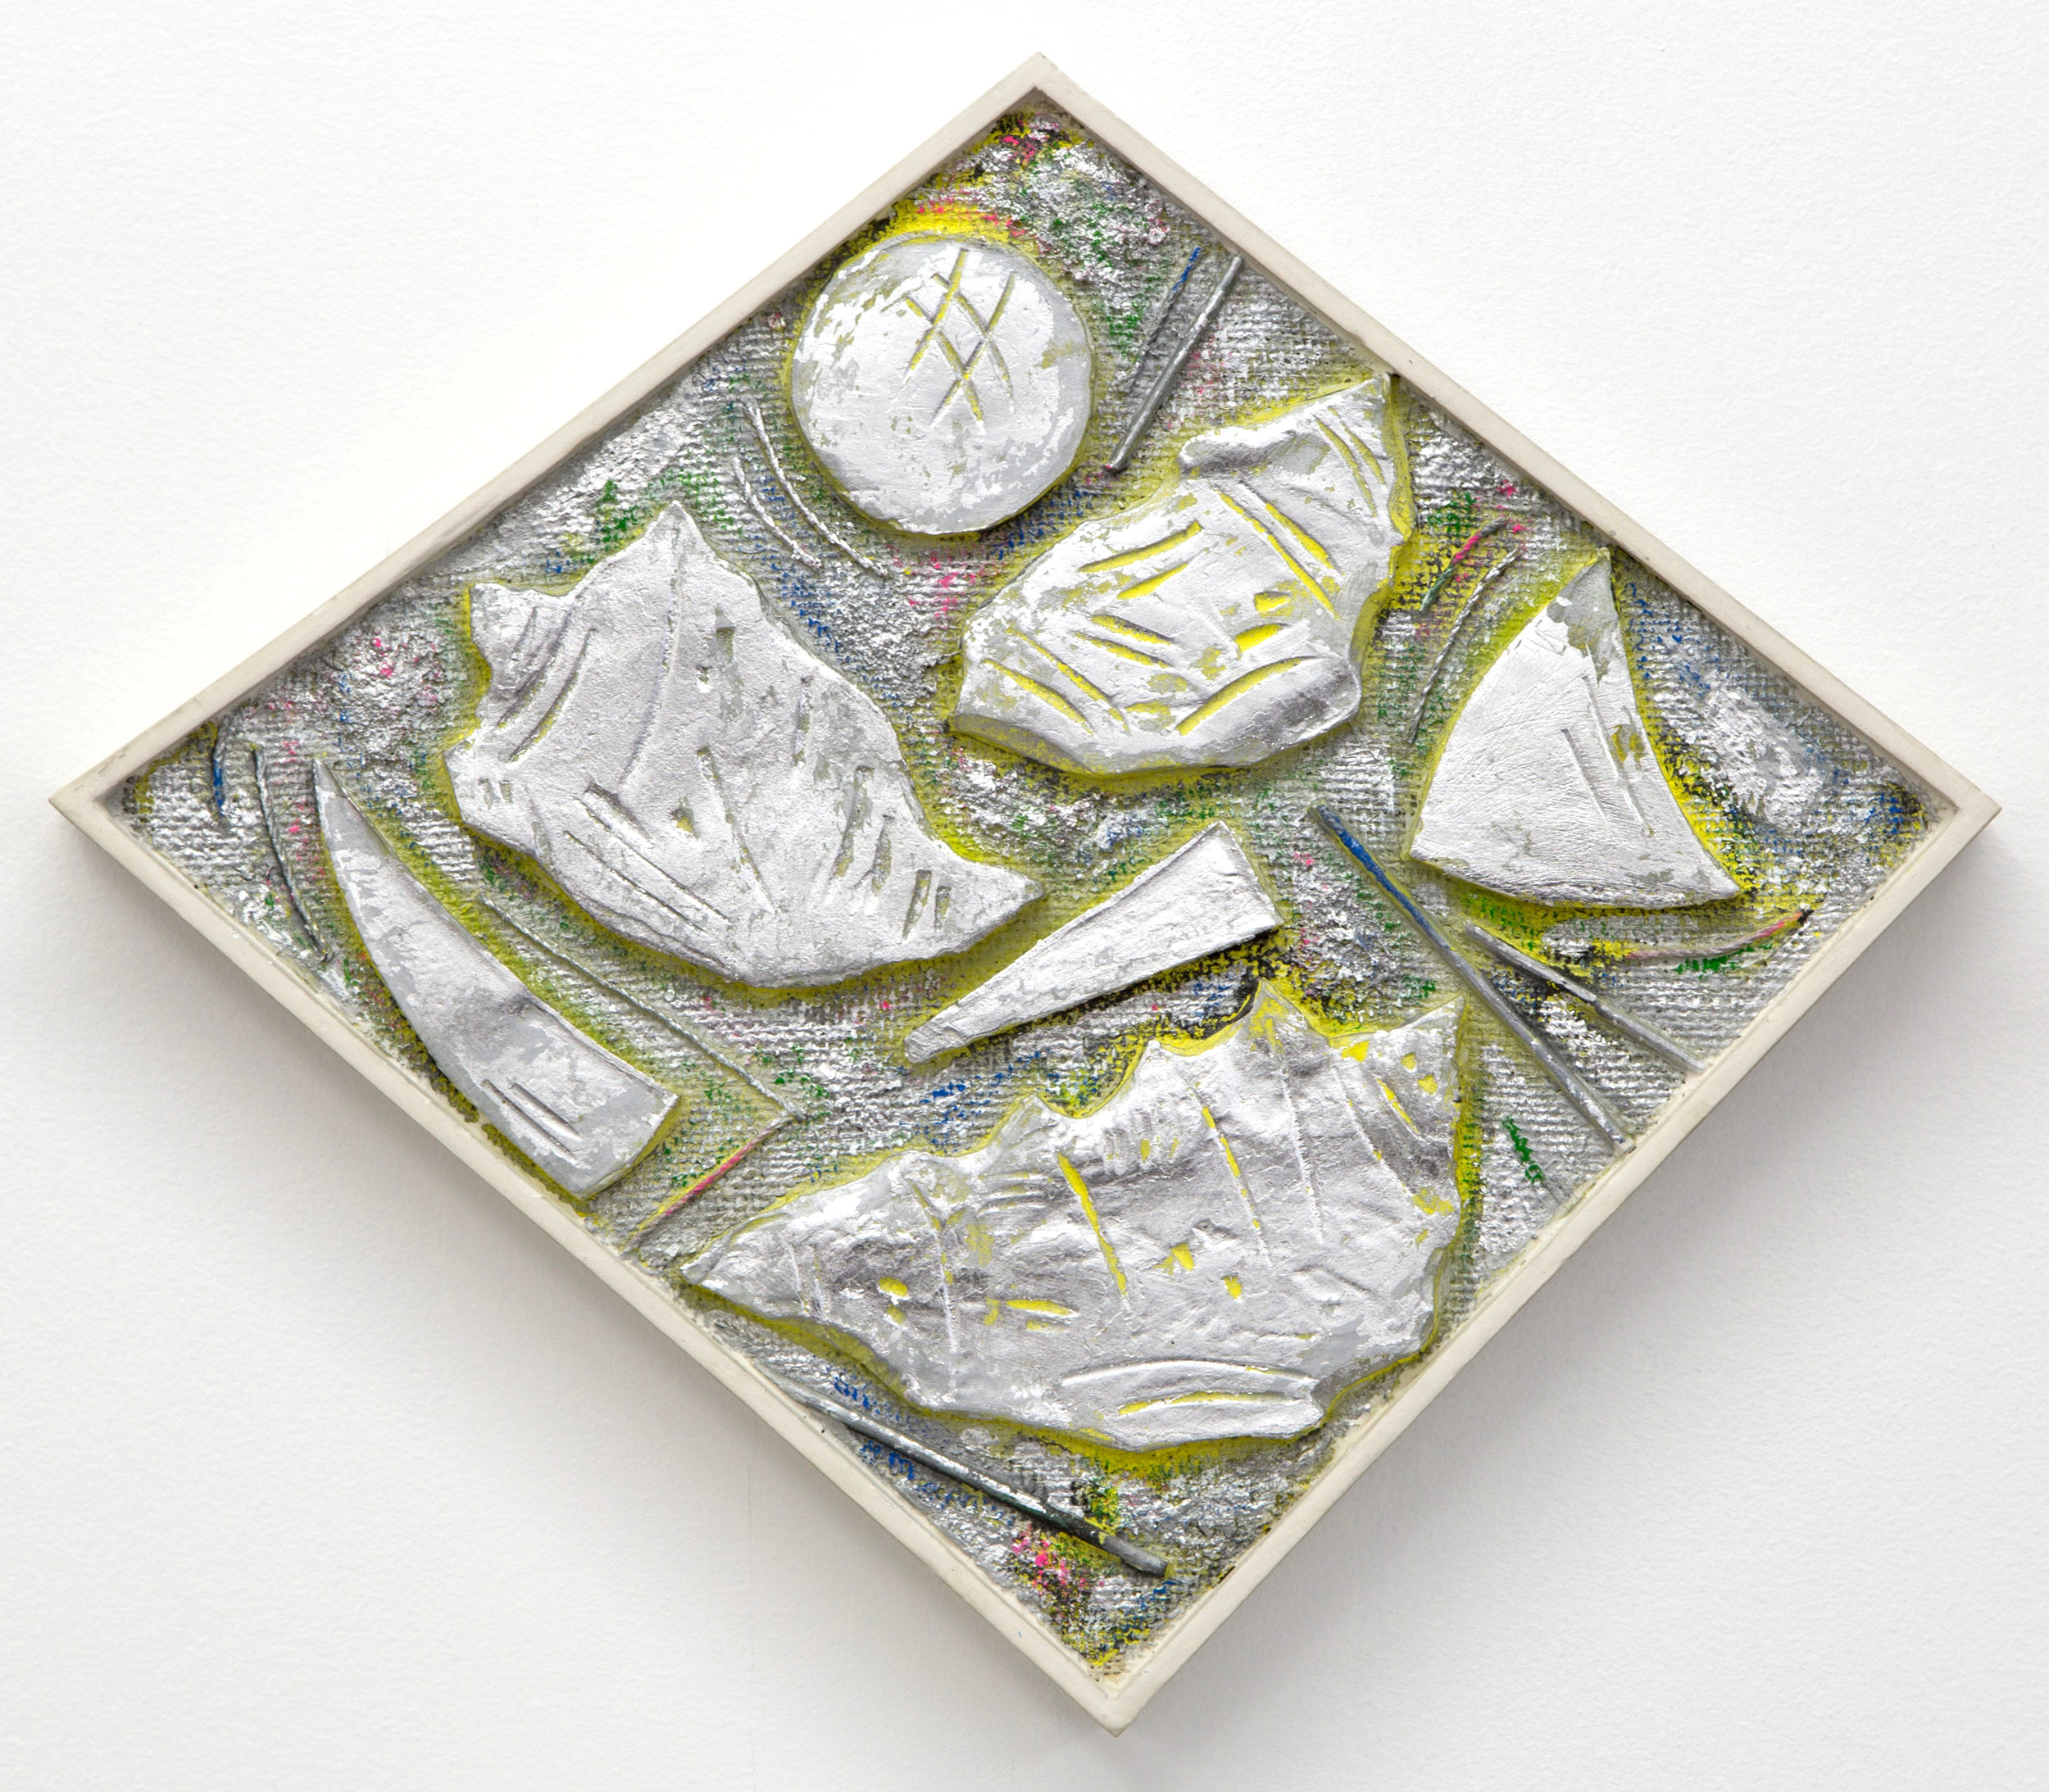 S.S.S.S. (silver, seashells, shards, shapes)  , 2016   silver leaf, enamel, acrylic, sand, bamboo,   string, burlap and plaster on wood panel   16 x 19 in